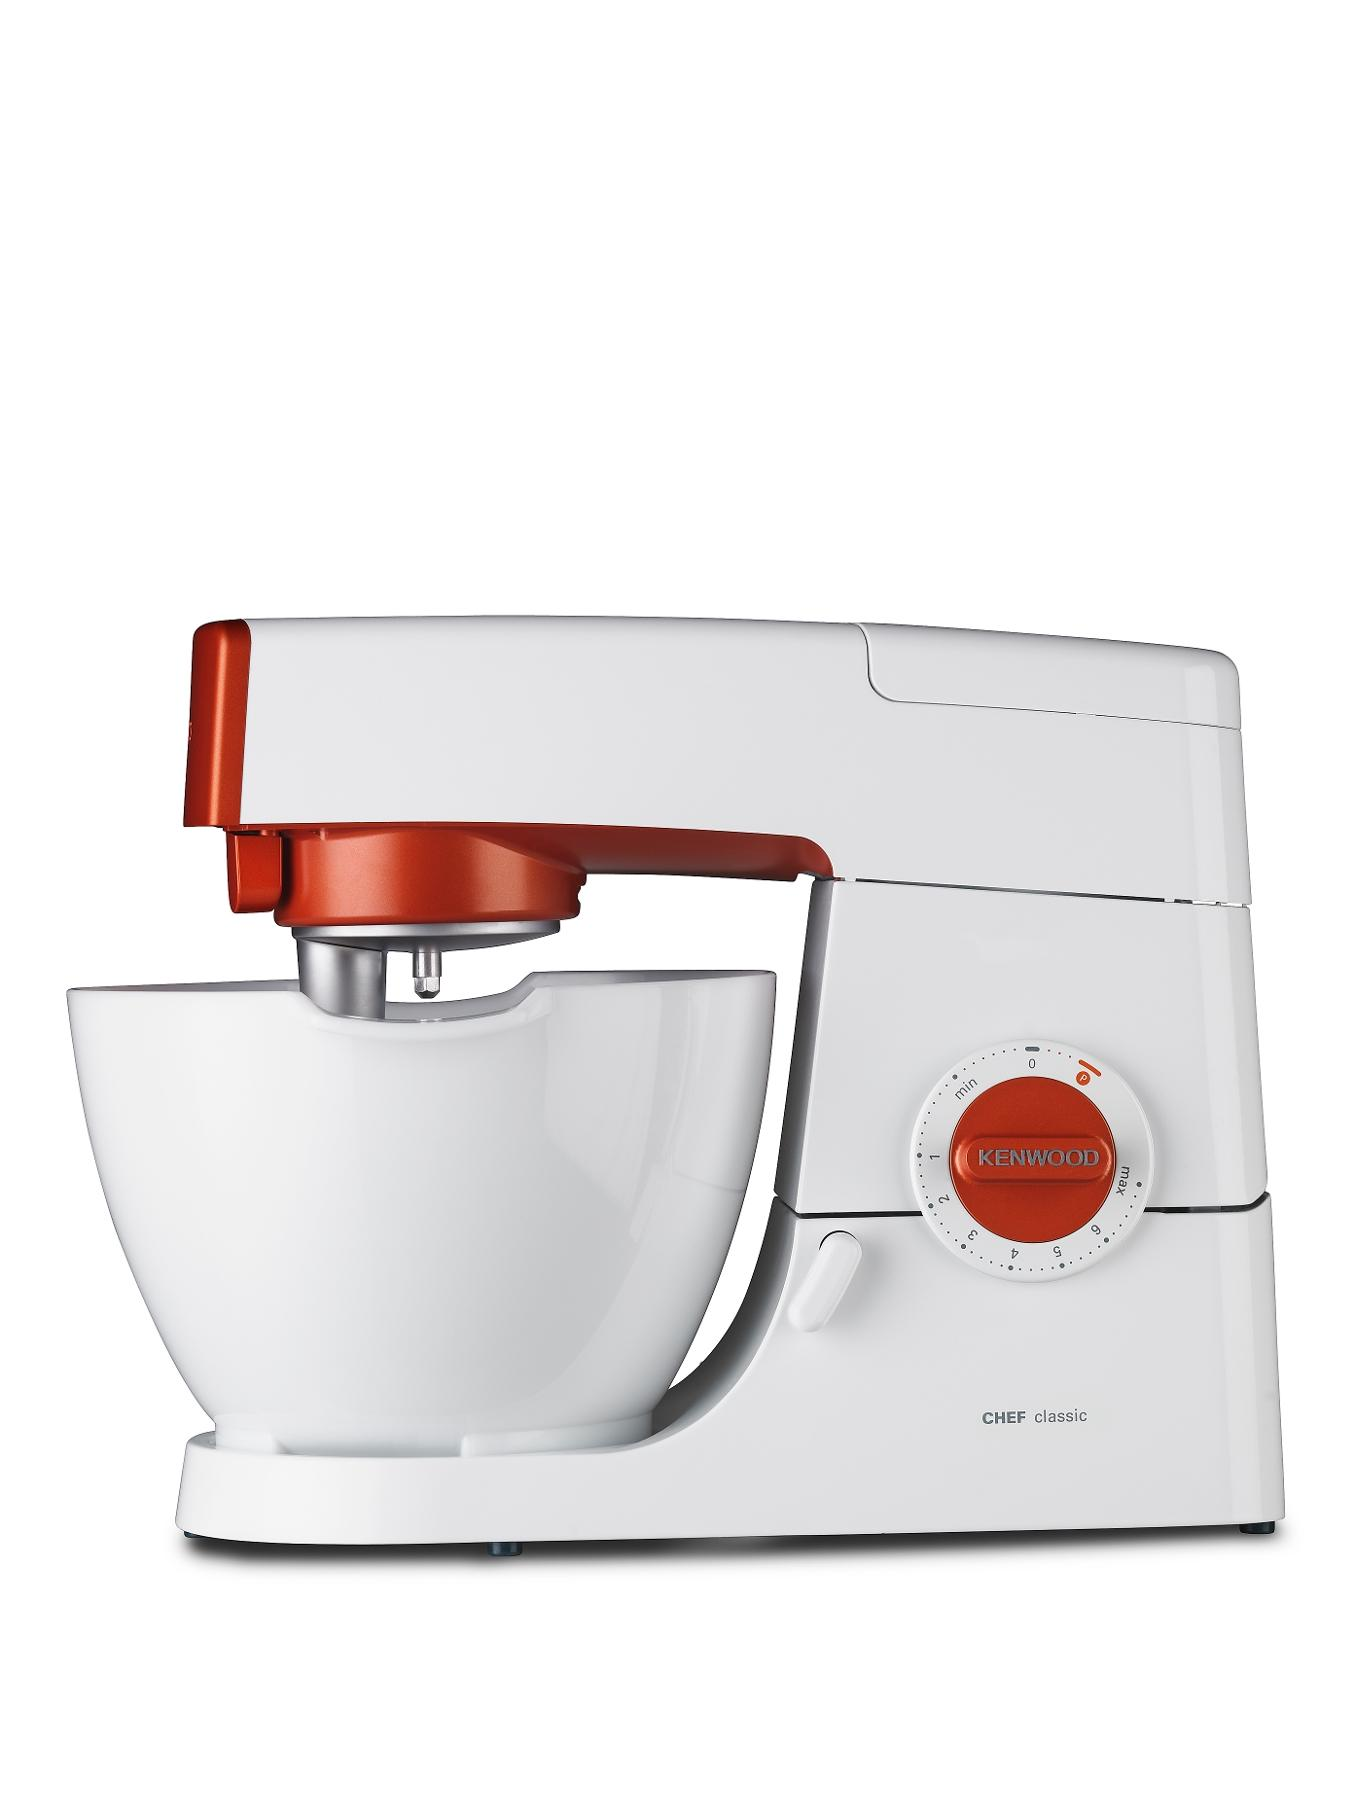 Kenwood Classic Chef Nostalgia - Calypso Orange